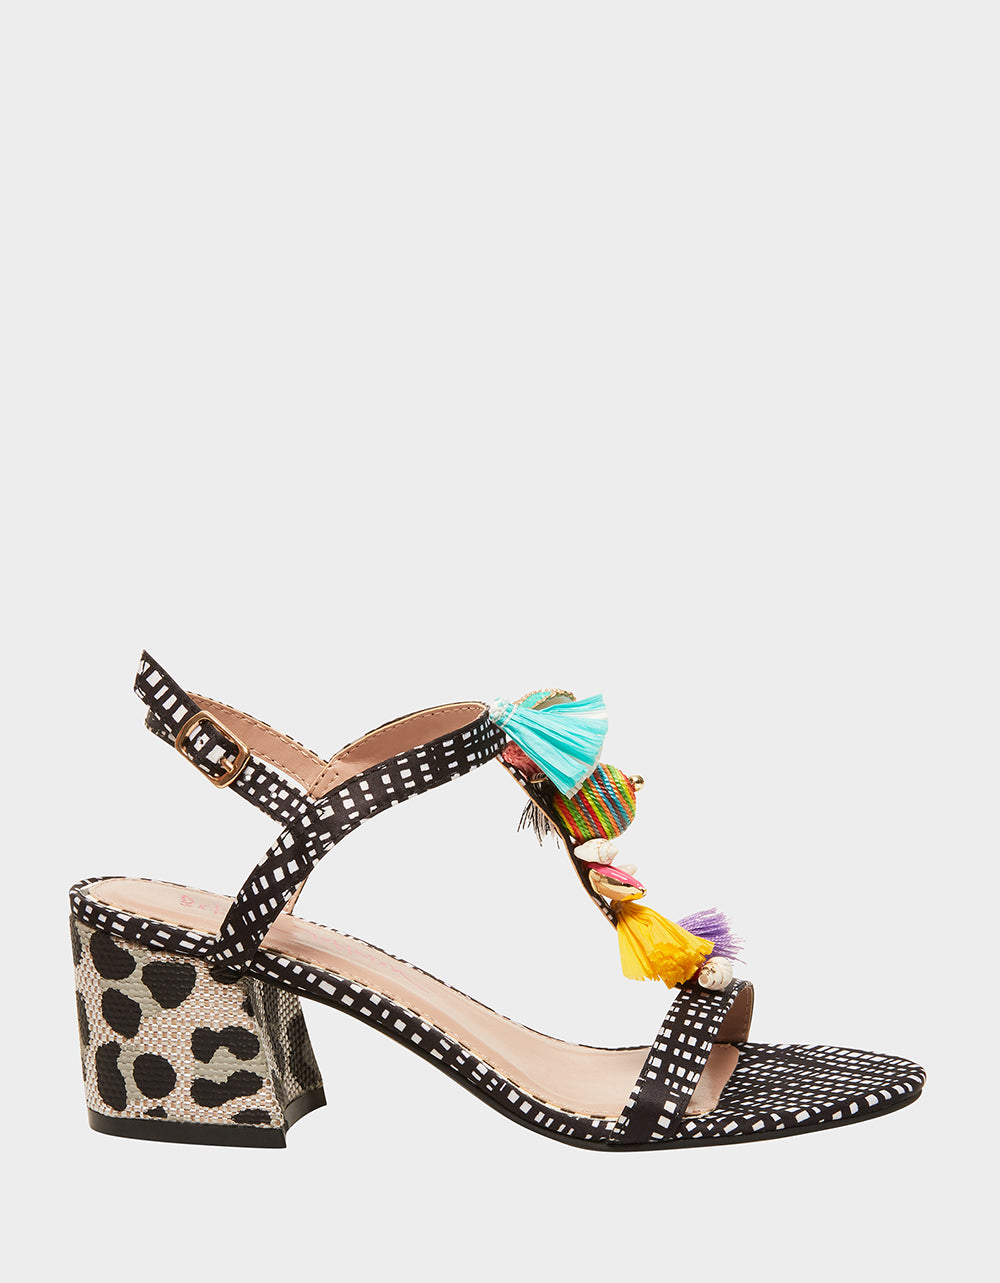 DYNAH BLACK/WHITE - SHOES - Betsey Johnson